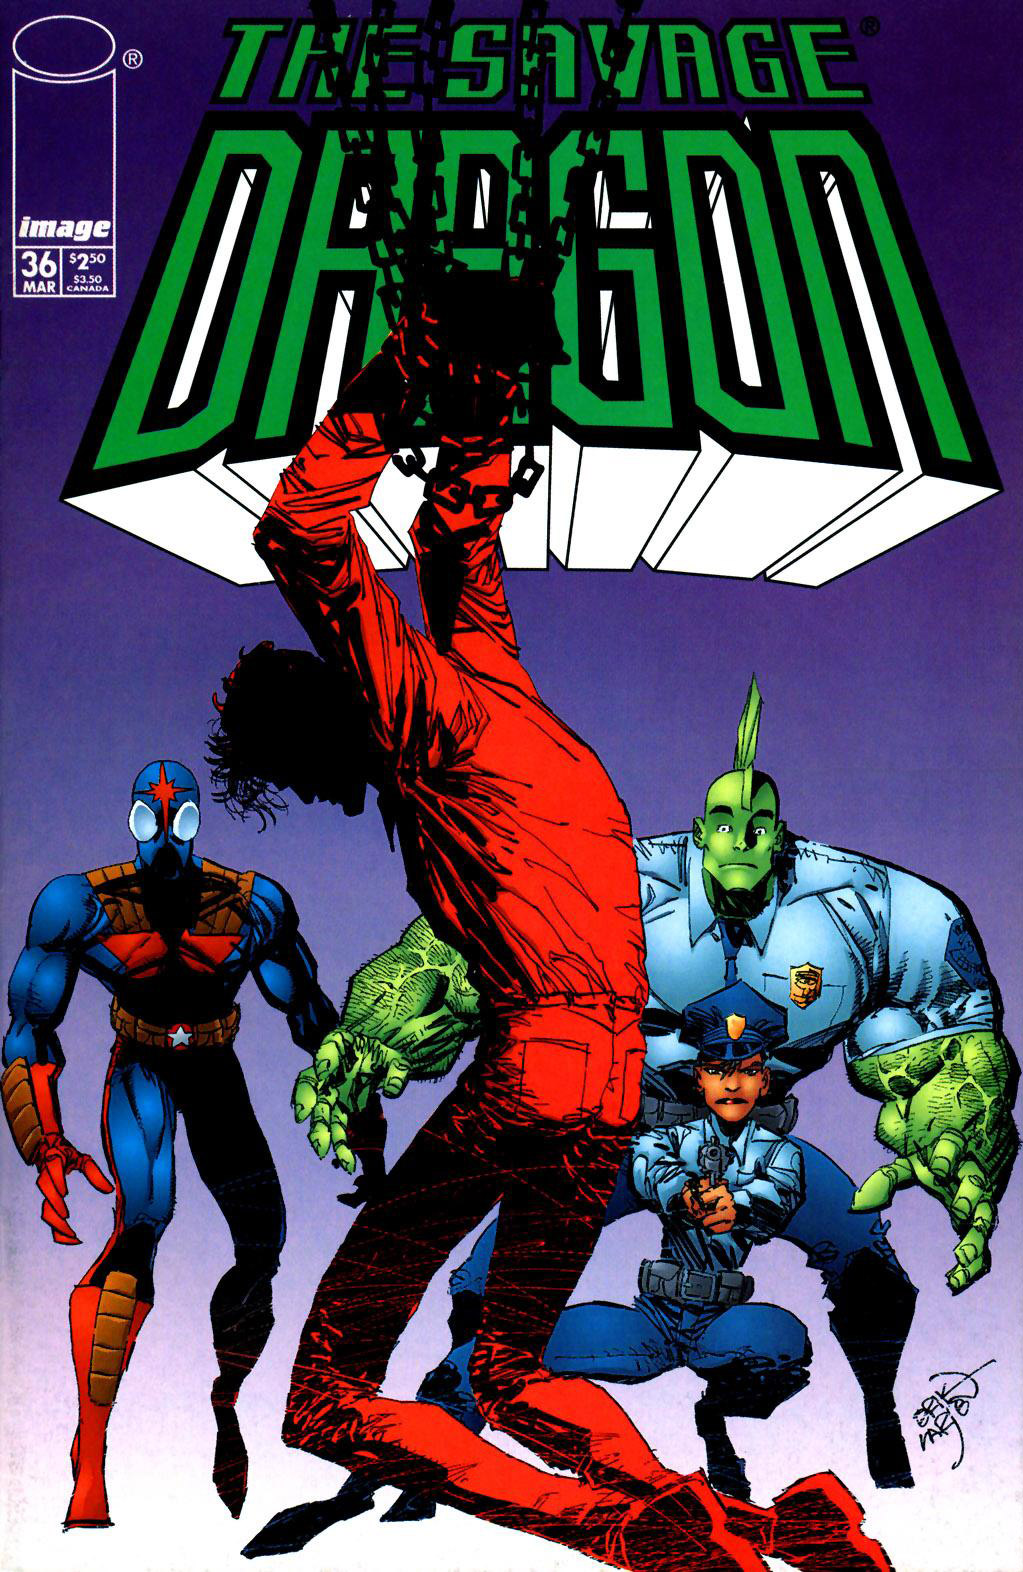 Cover Savage Dragon Vol.2 #36